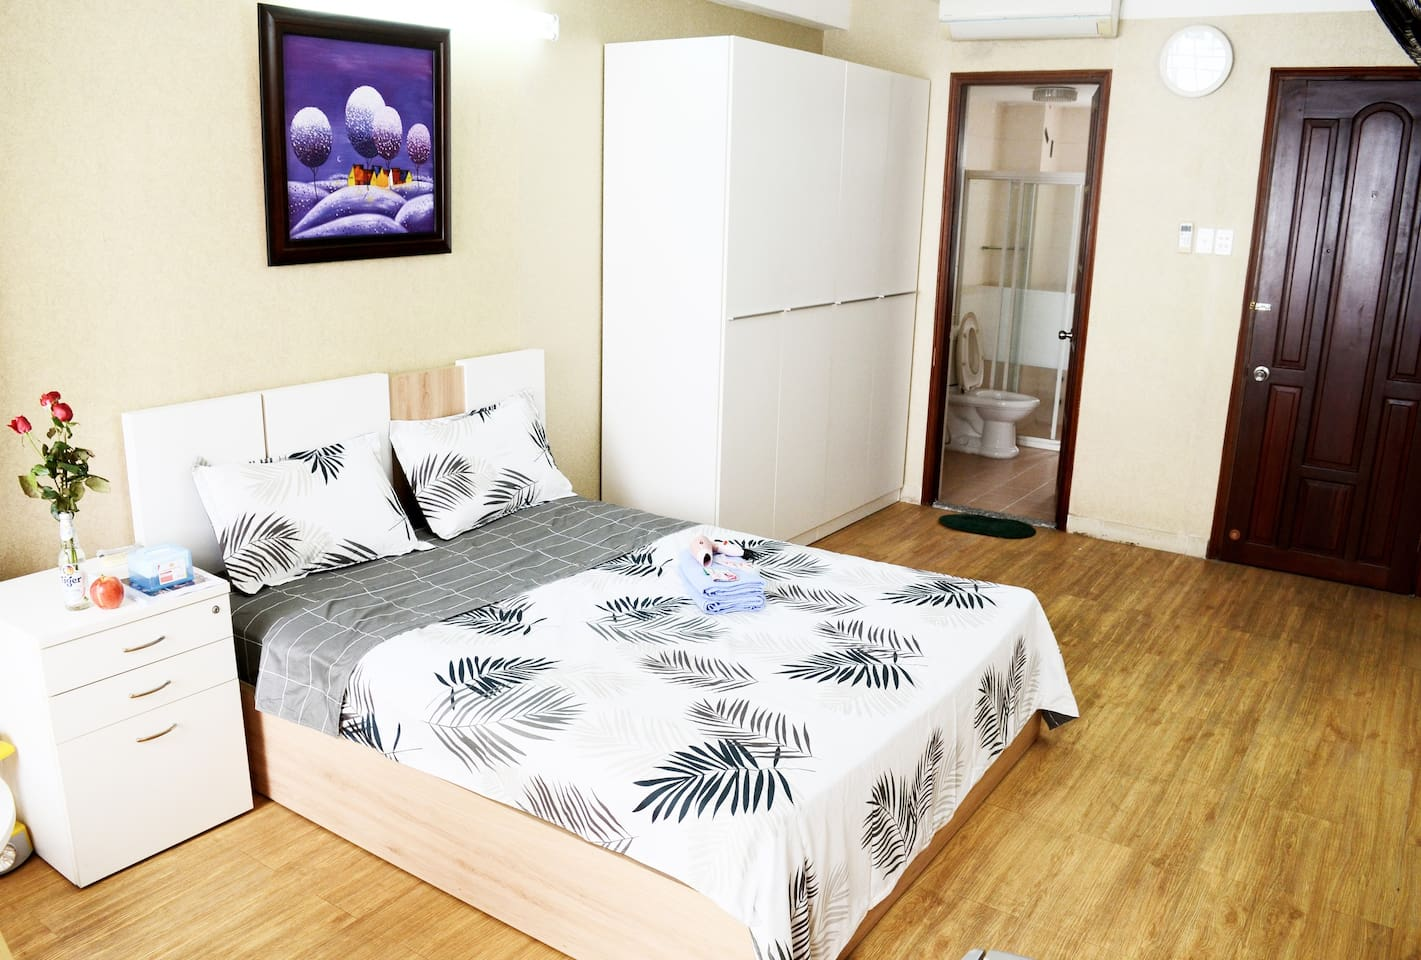 SuAn Balcony Studio with Seperate Kitchen has full furniture: Big Closet, Queen-size bed, Desk,Smart TV, A/C...